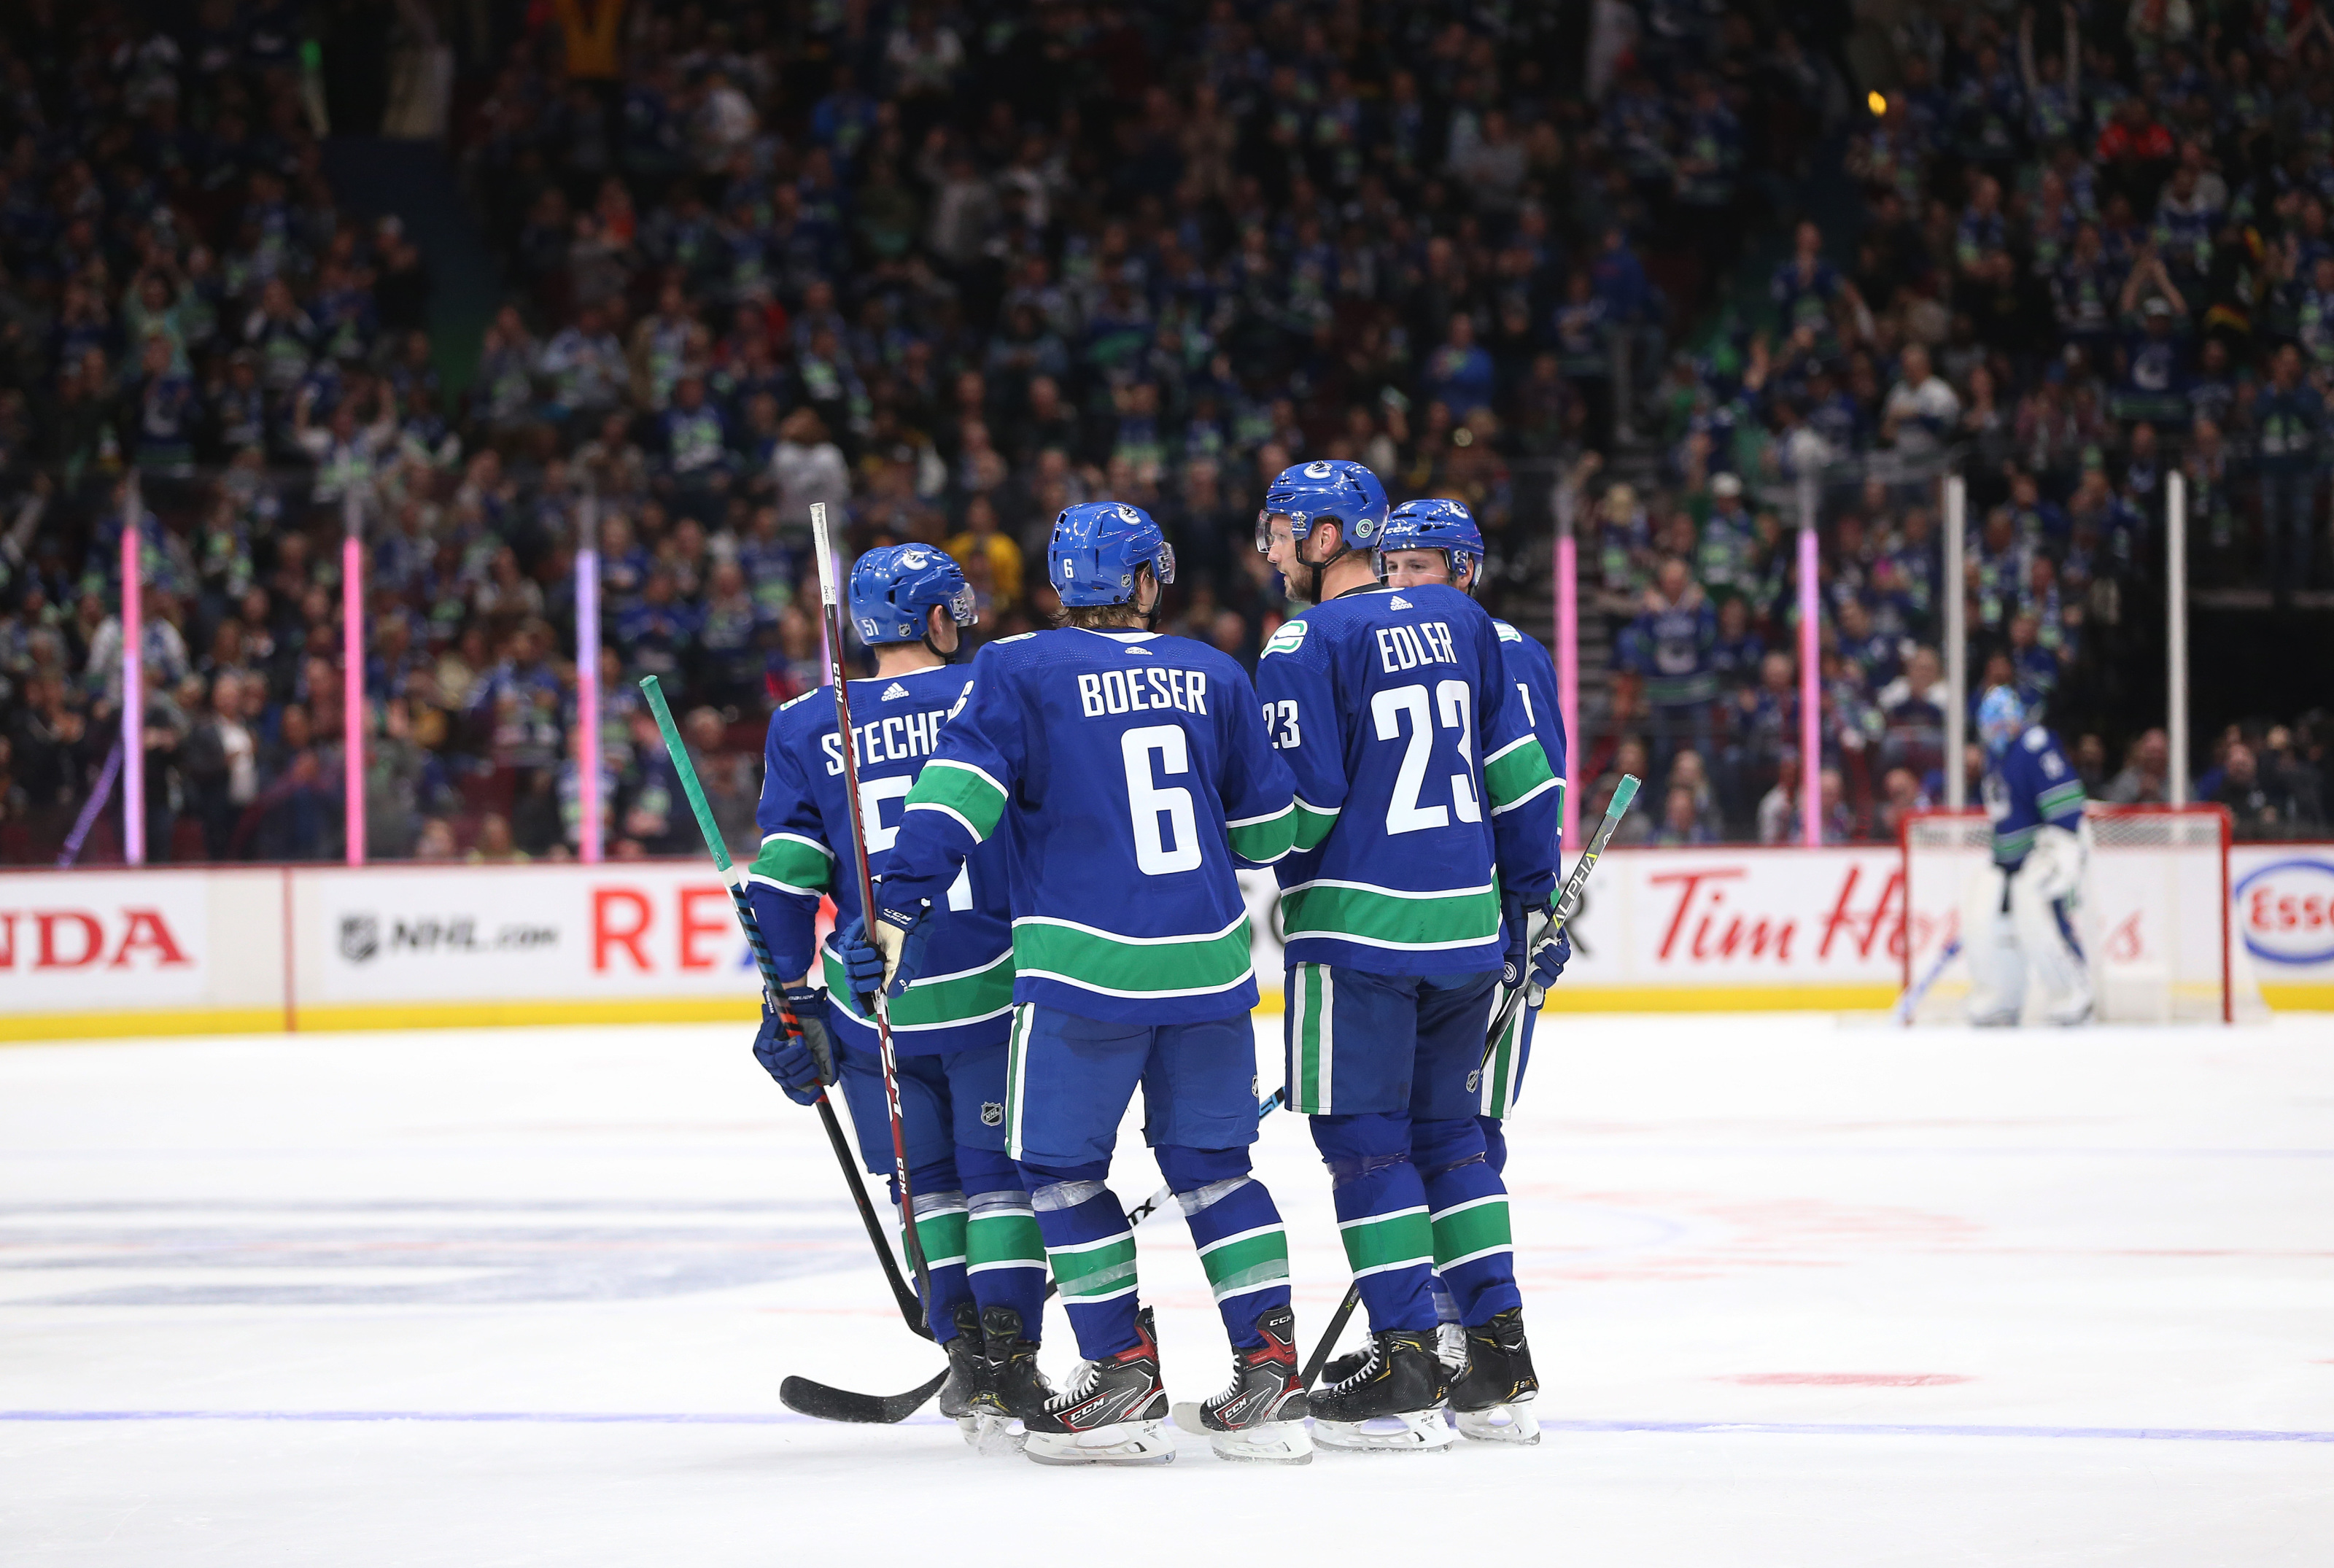 Canucks would have been a tough first round playoff for anybody